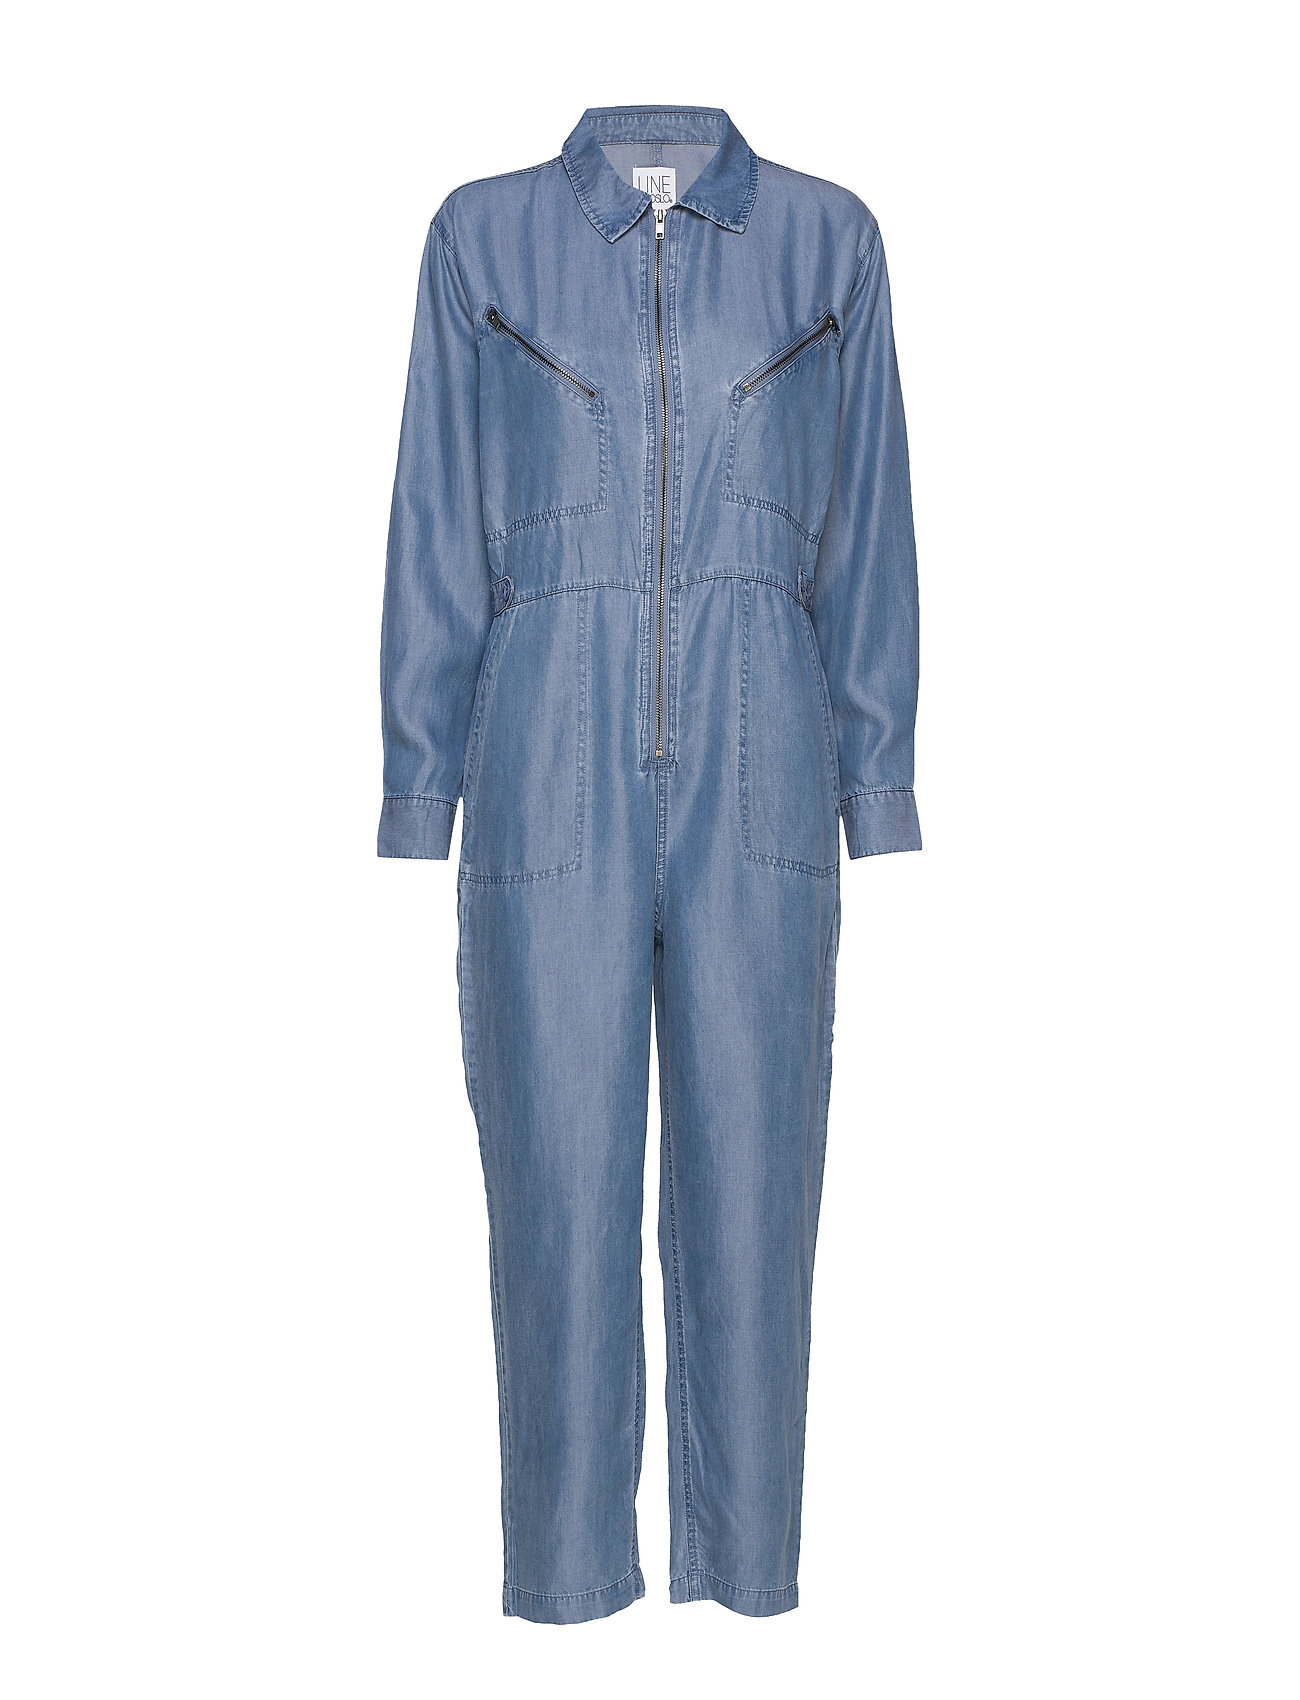 Image of Bondi Tencel Jumpsuit Blå Line Of Oslo (3326812013)